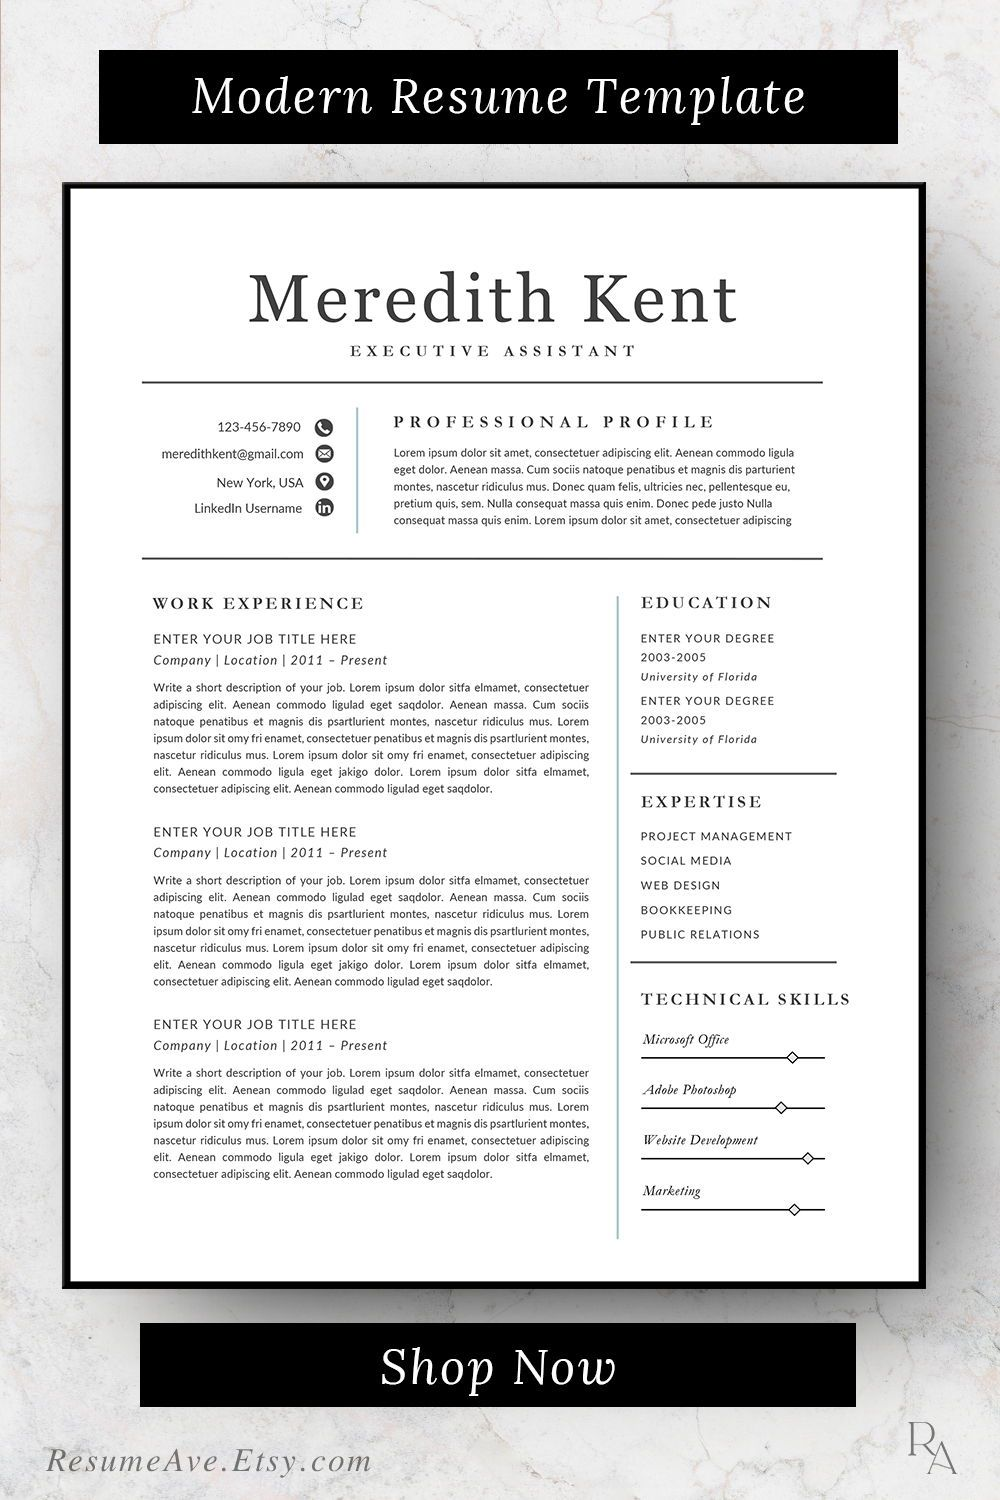 Classic traditional nurse resume template simple executive